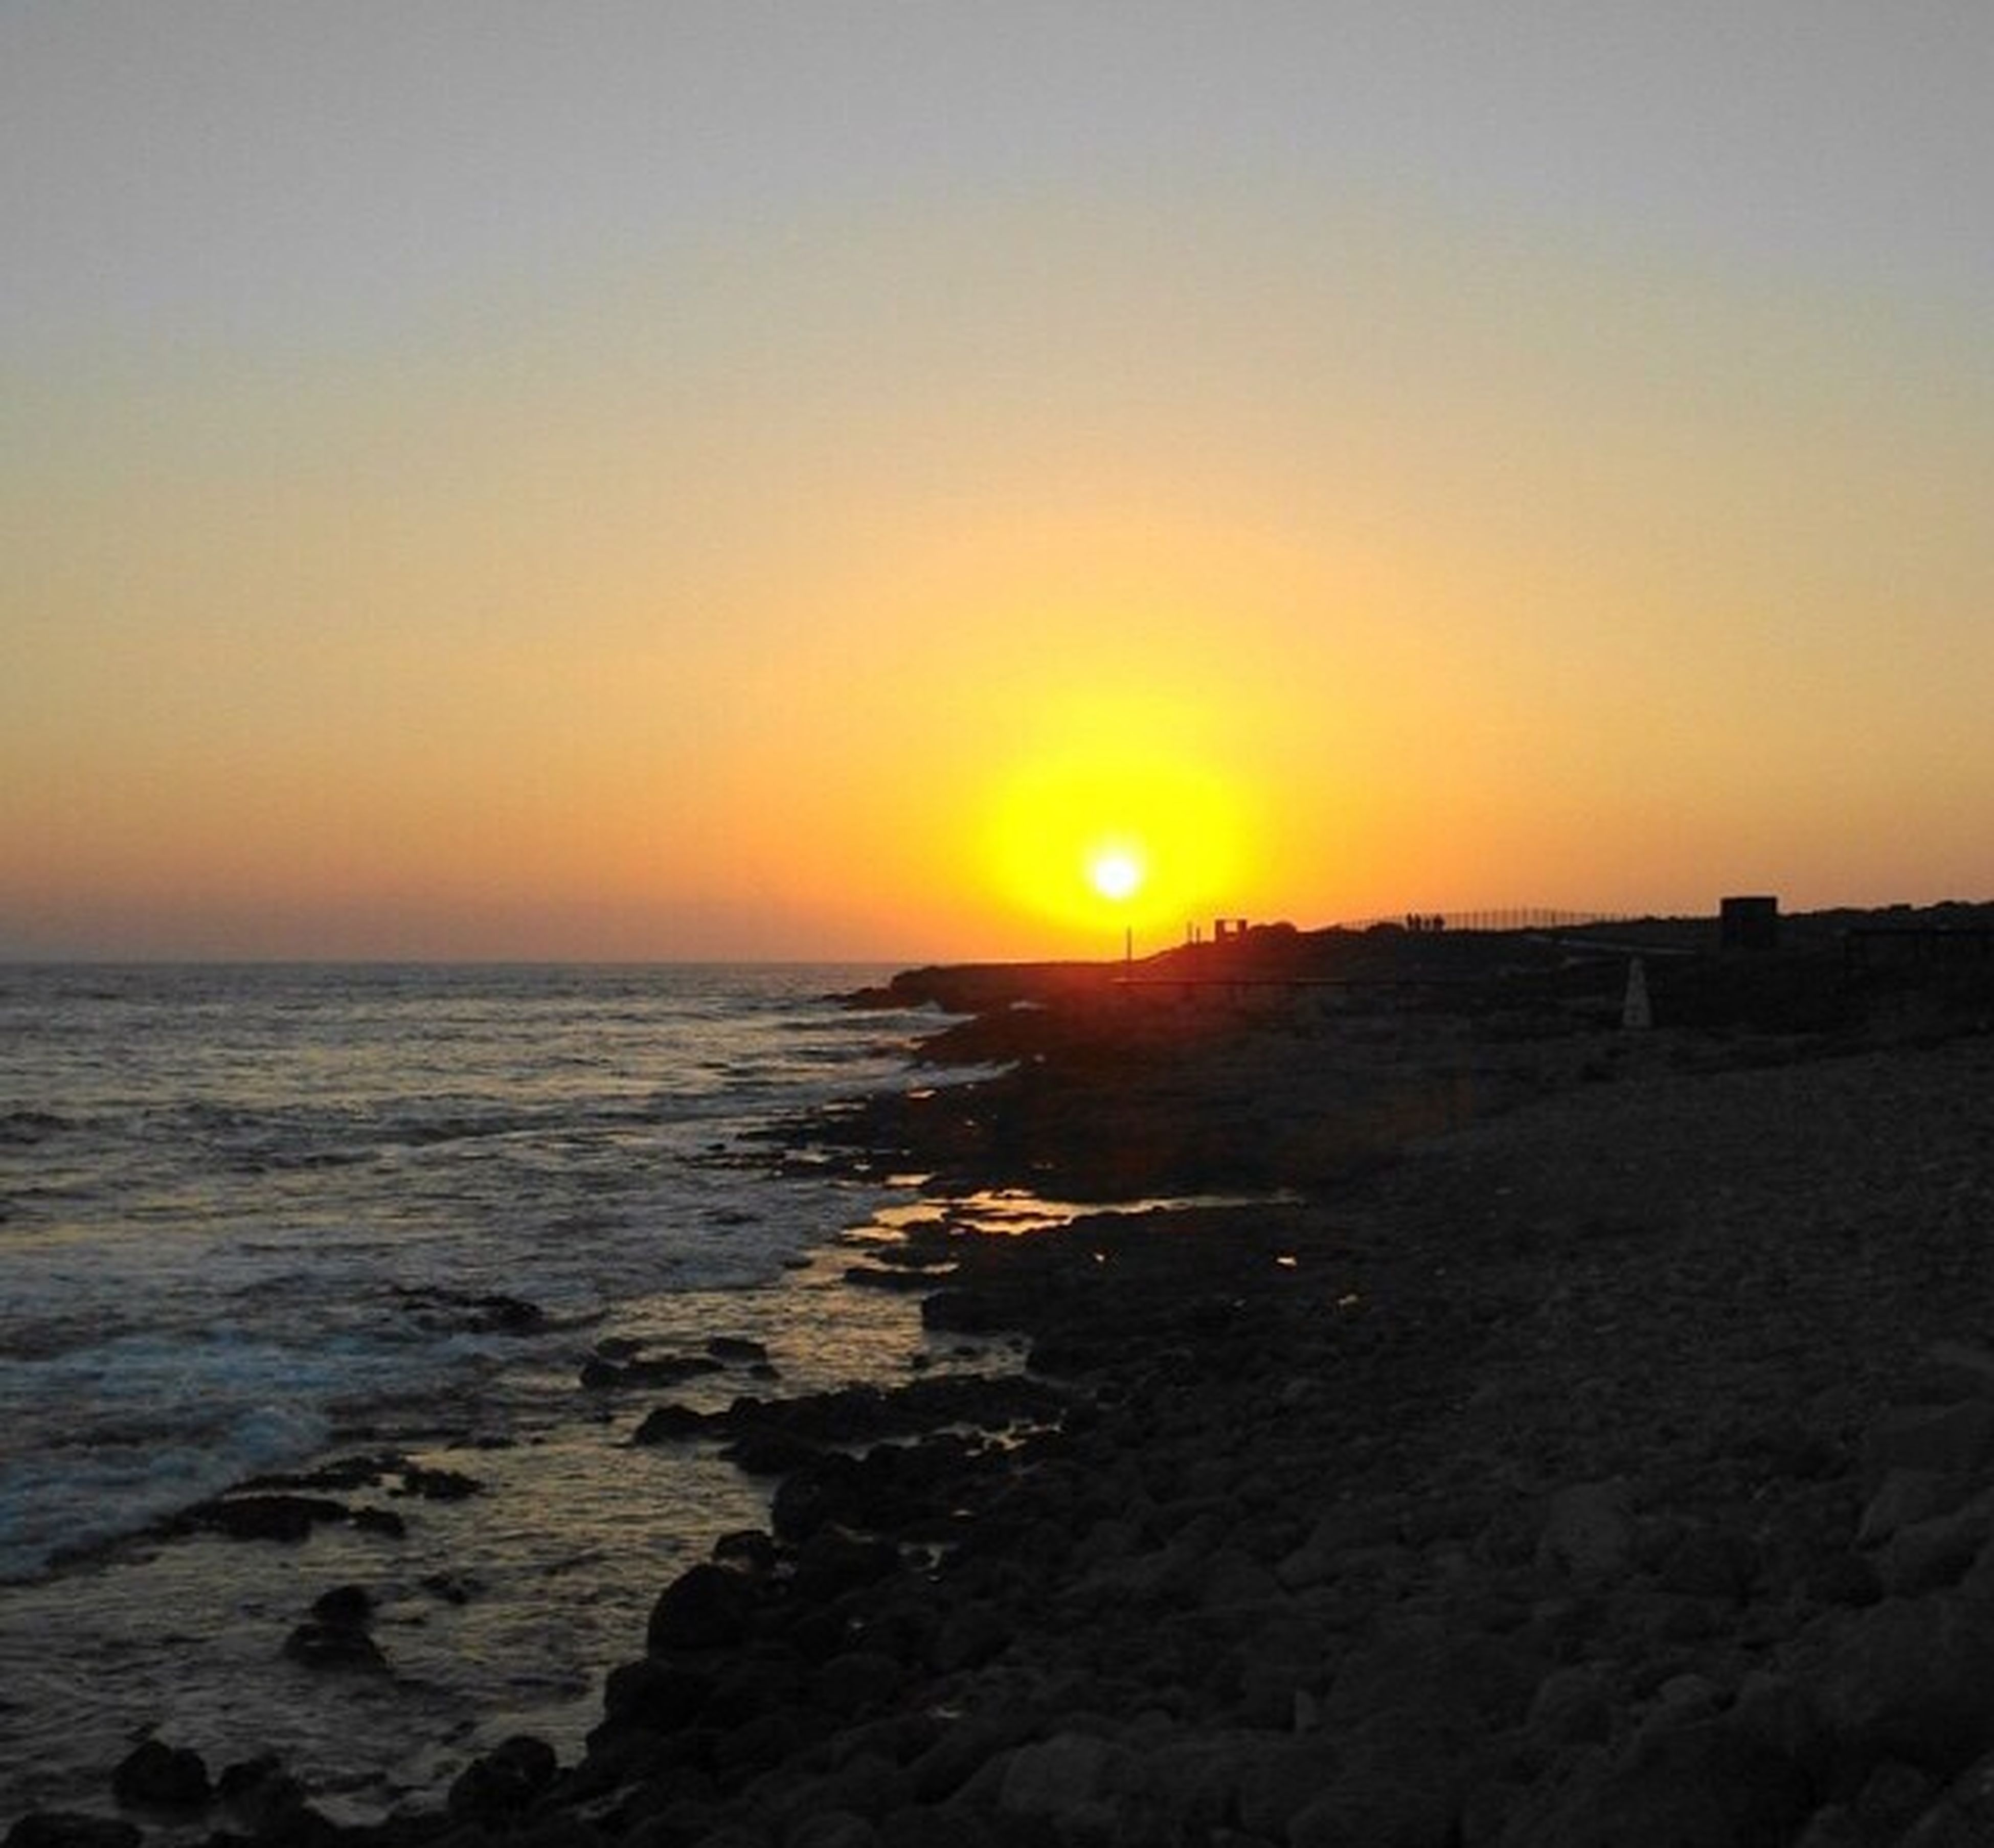 sunset, water, sea, scenics, sun, tranquil scene, orange color, horizon over water, beauty in nature, tranquility, clear sky, beach, copy space, idyllic, nature, shore, rock - object, sky, sunlight, remote